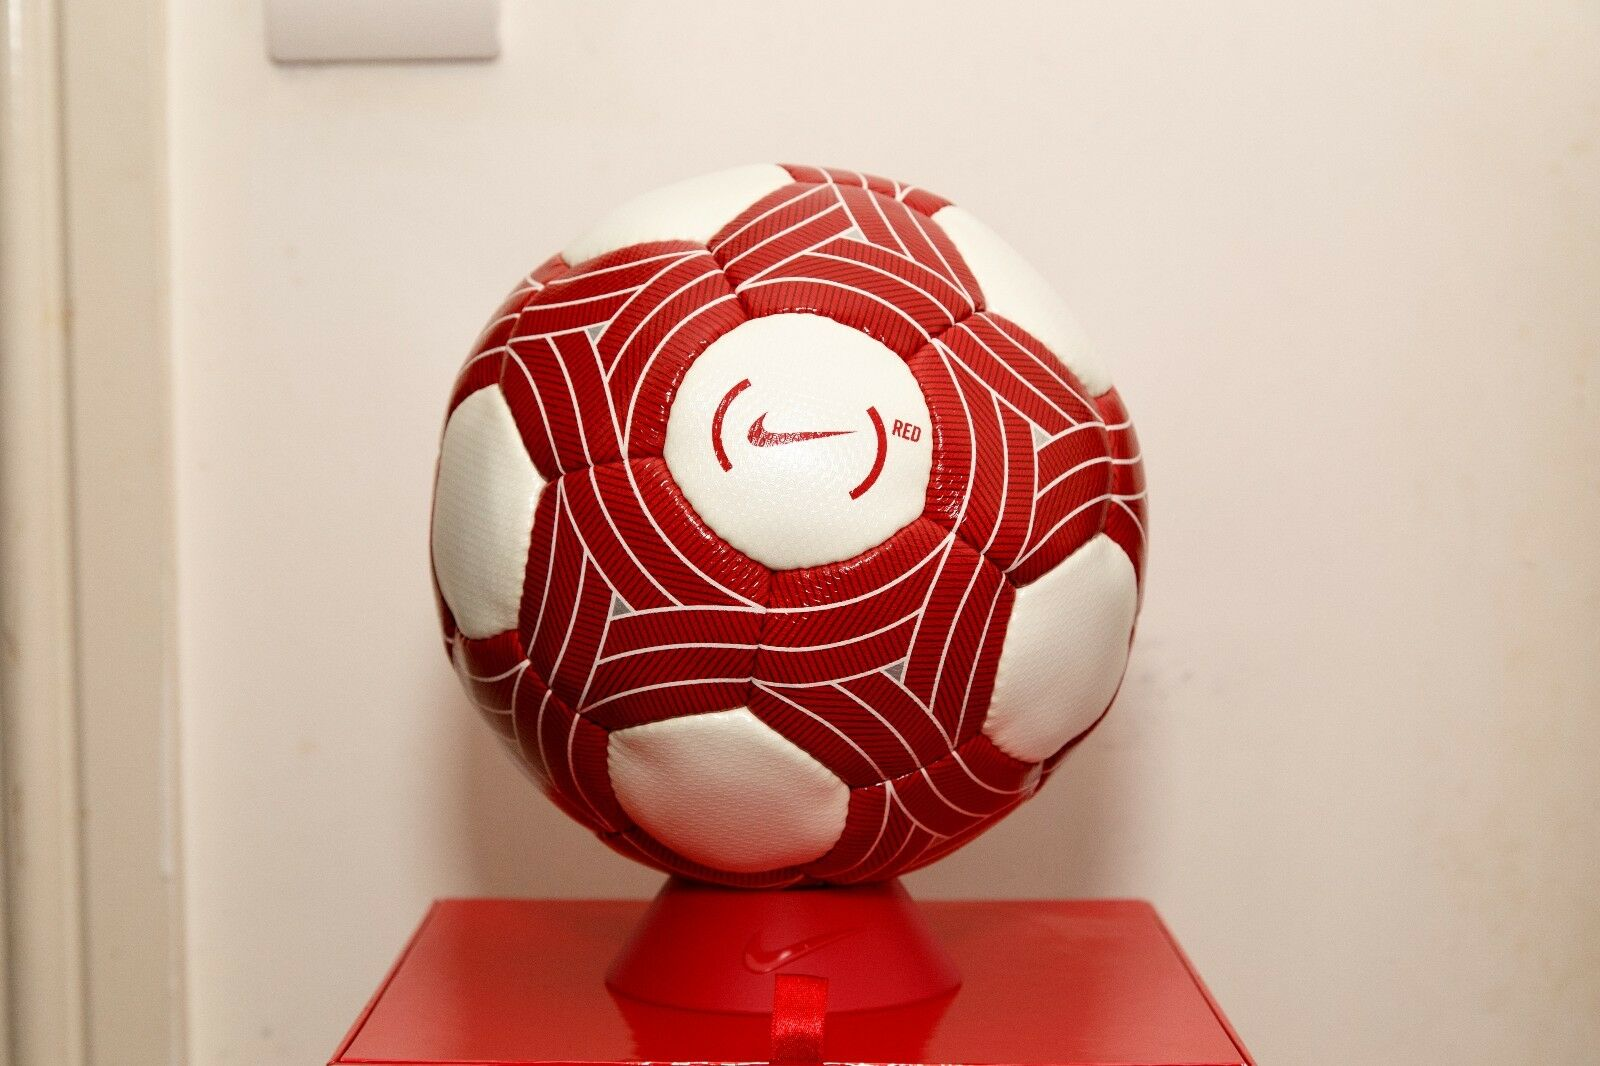 Nike T90 Ascente Limited Edition Ball-bianco rosso